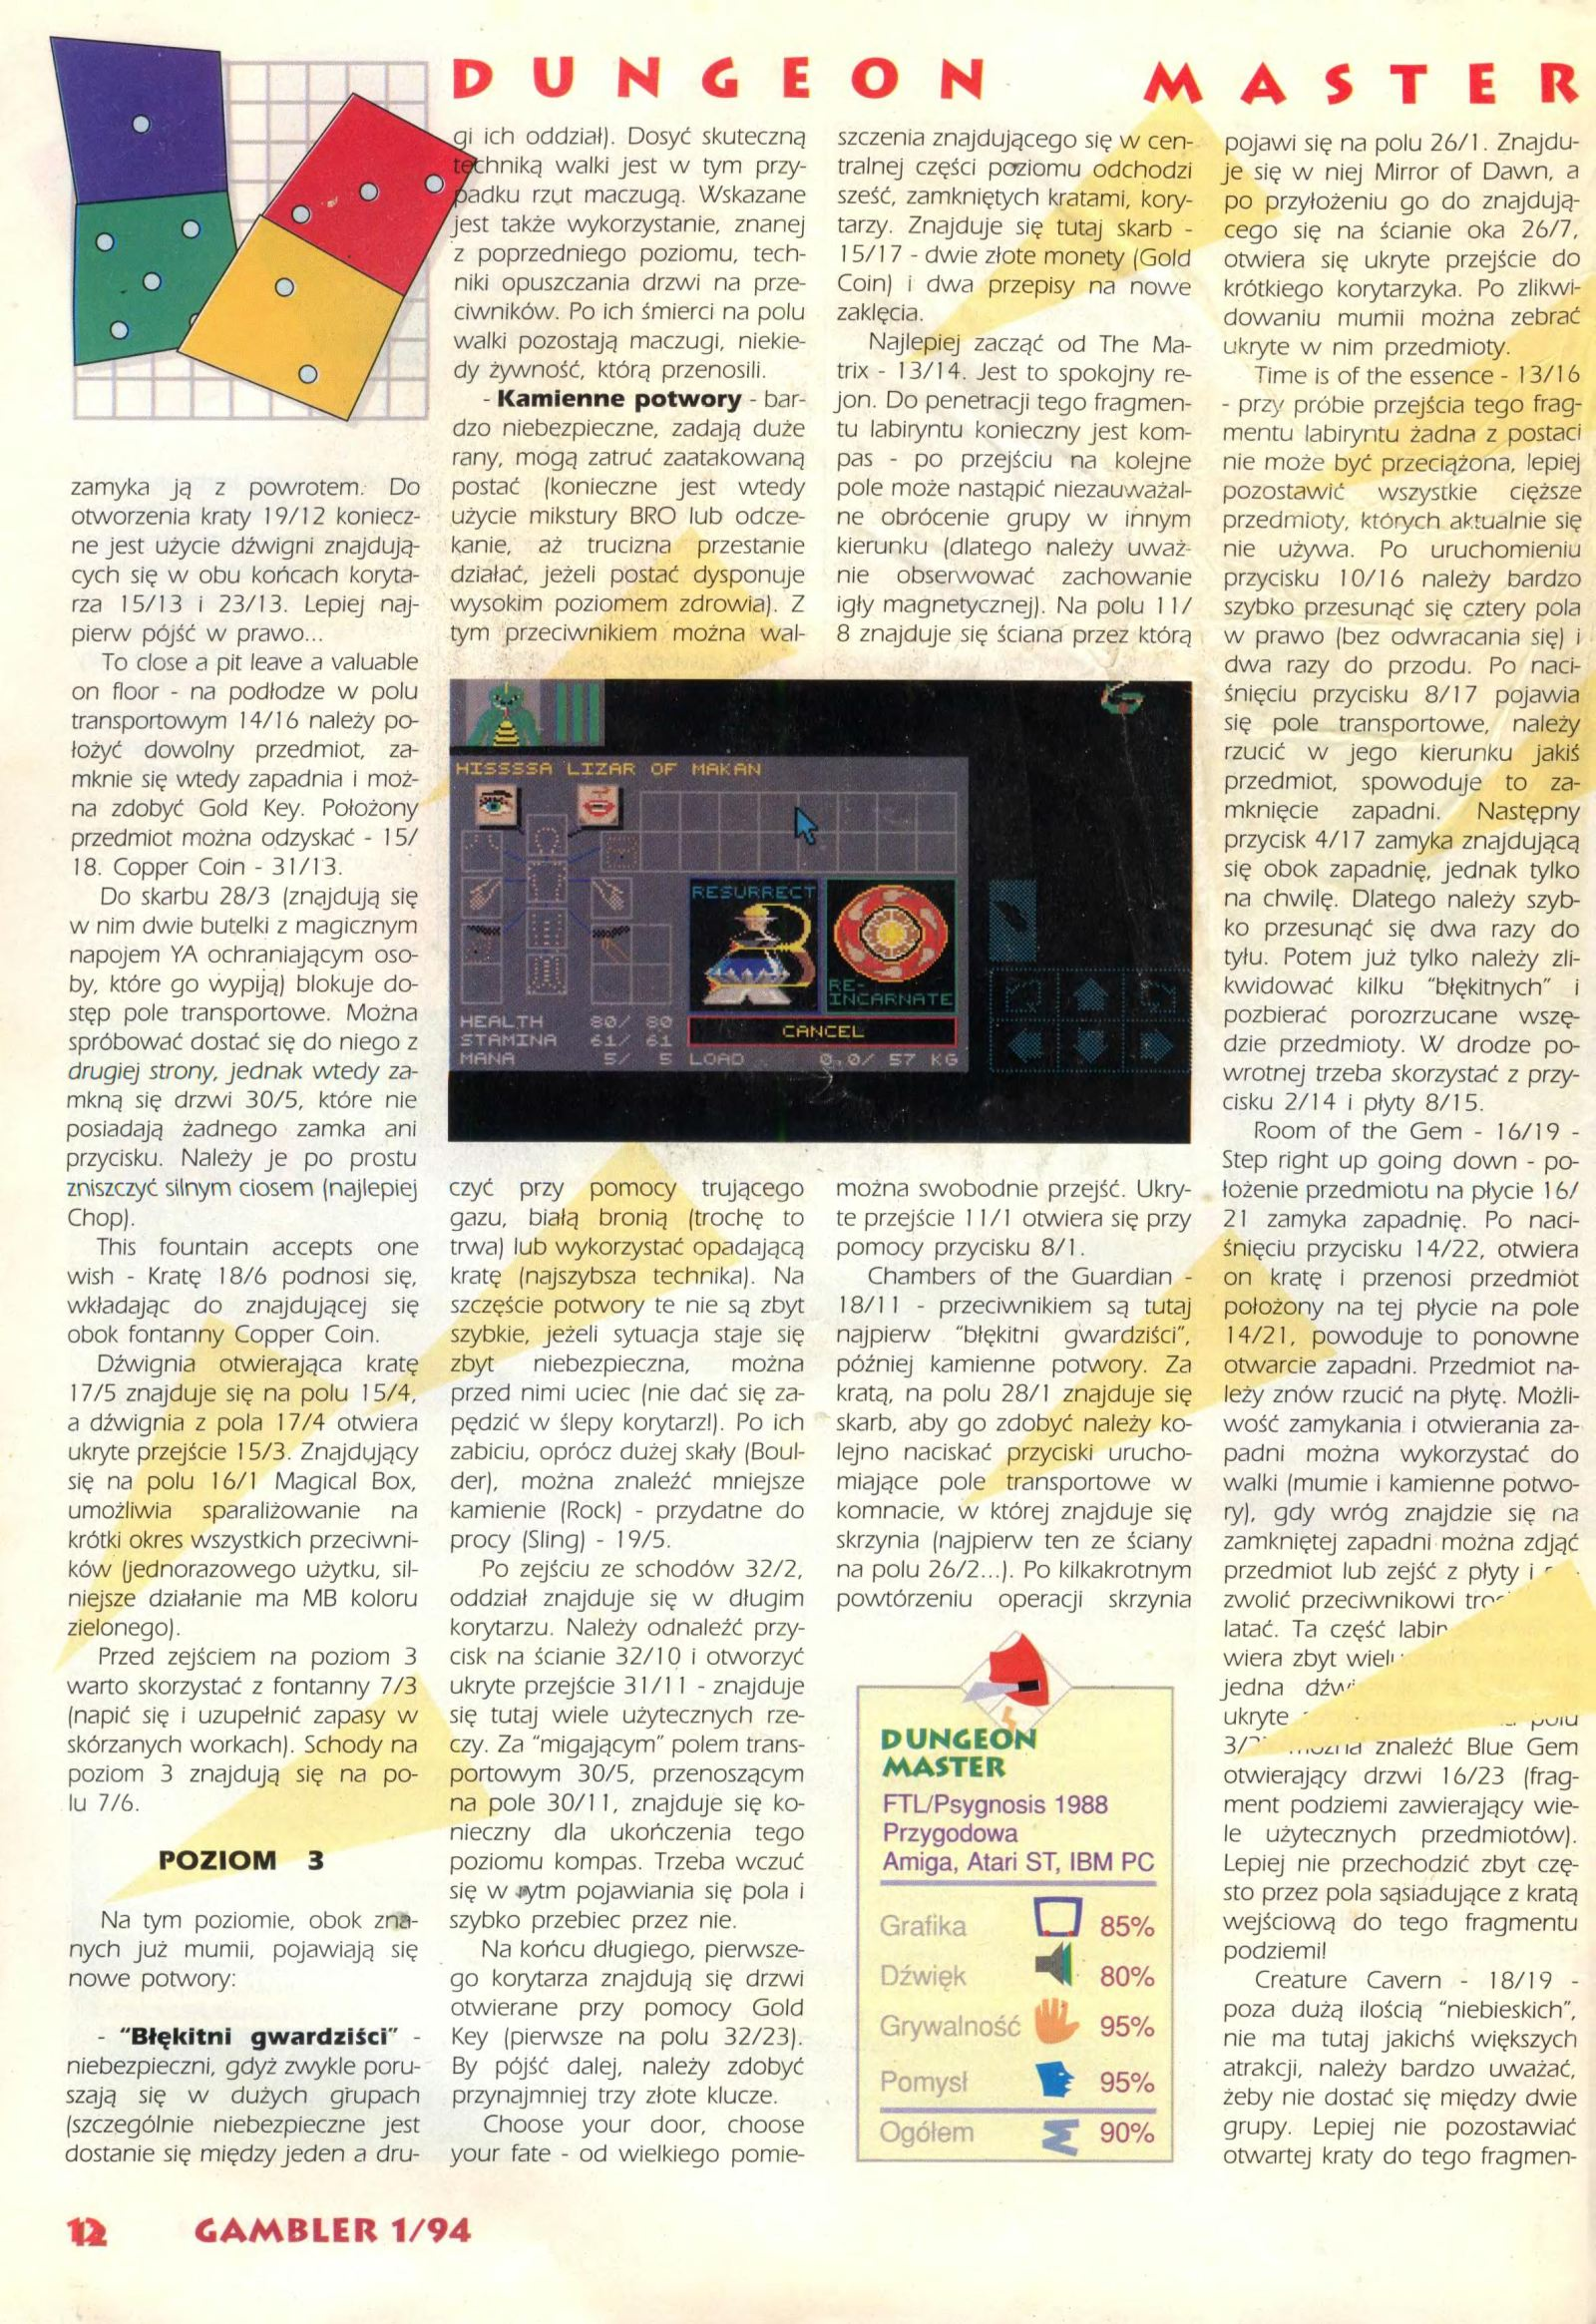 Dungeon Master Guide published in Polish magazine 'Gambler', January 1994, Page 12